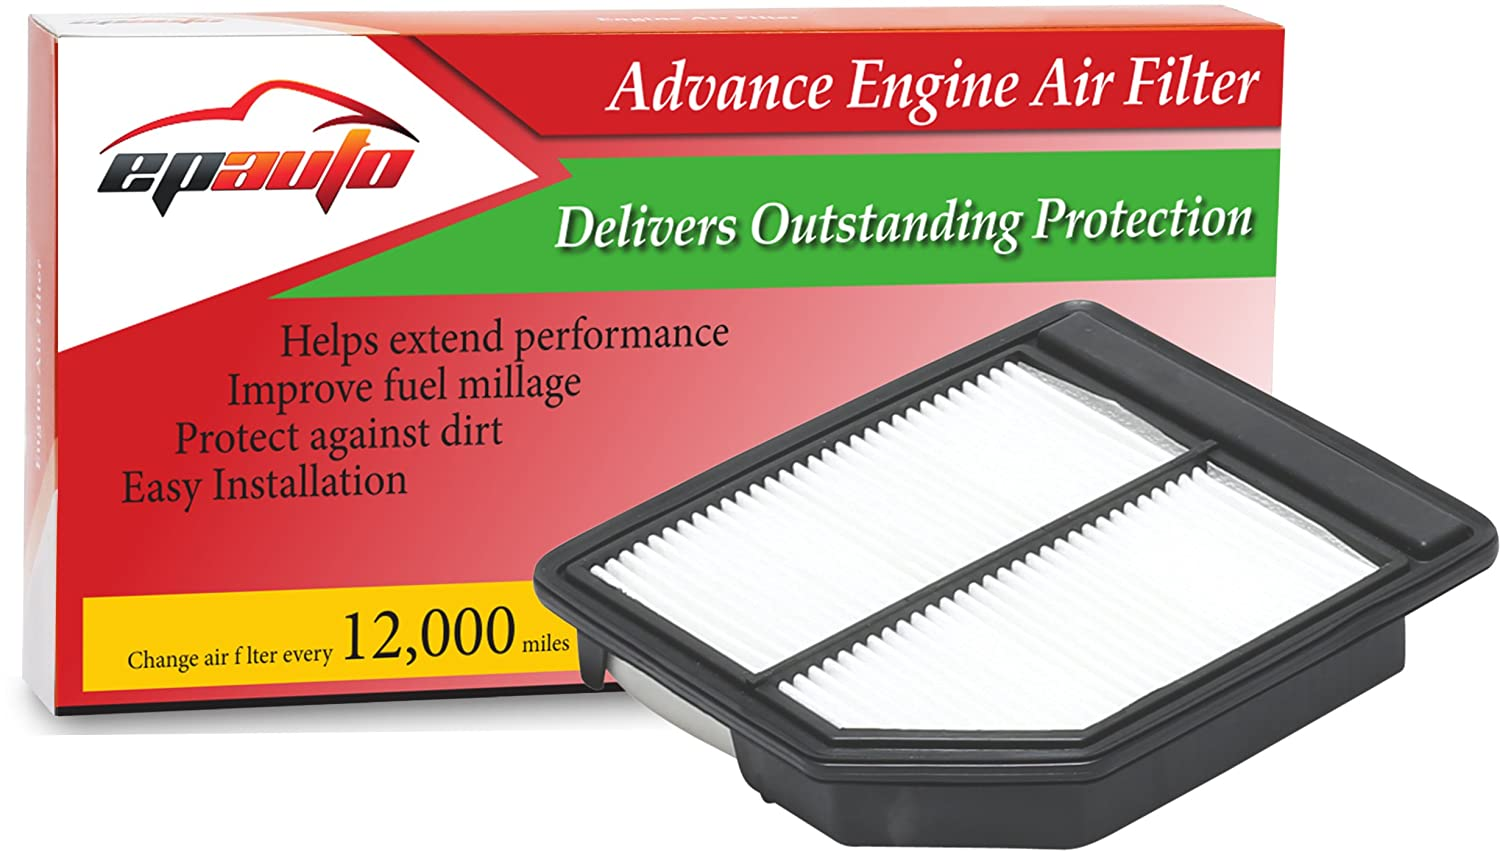 EPAuto GP165 (CA10165) Replacement for Honda Extra Guard Rigid Panel Engine Air Filter for Civic (2006-2011), Suggest Replace with Cabin Air Filter with CP134 (CF10134)